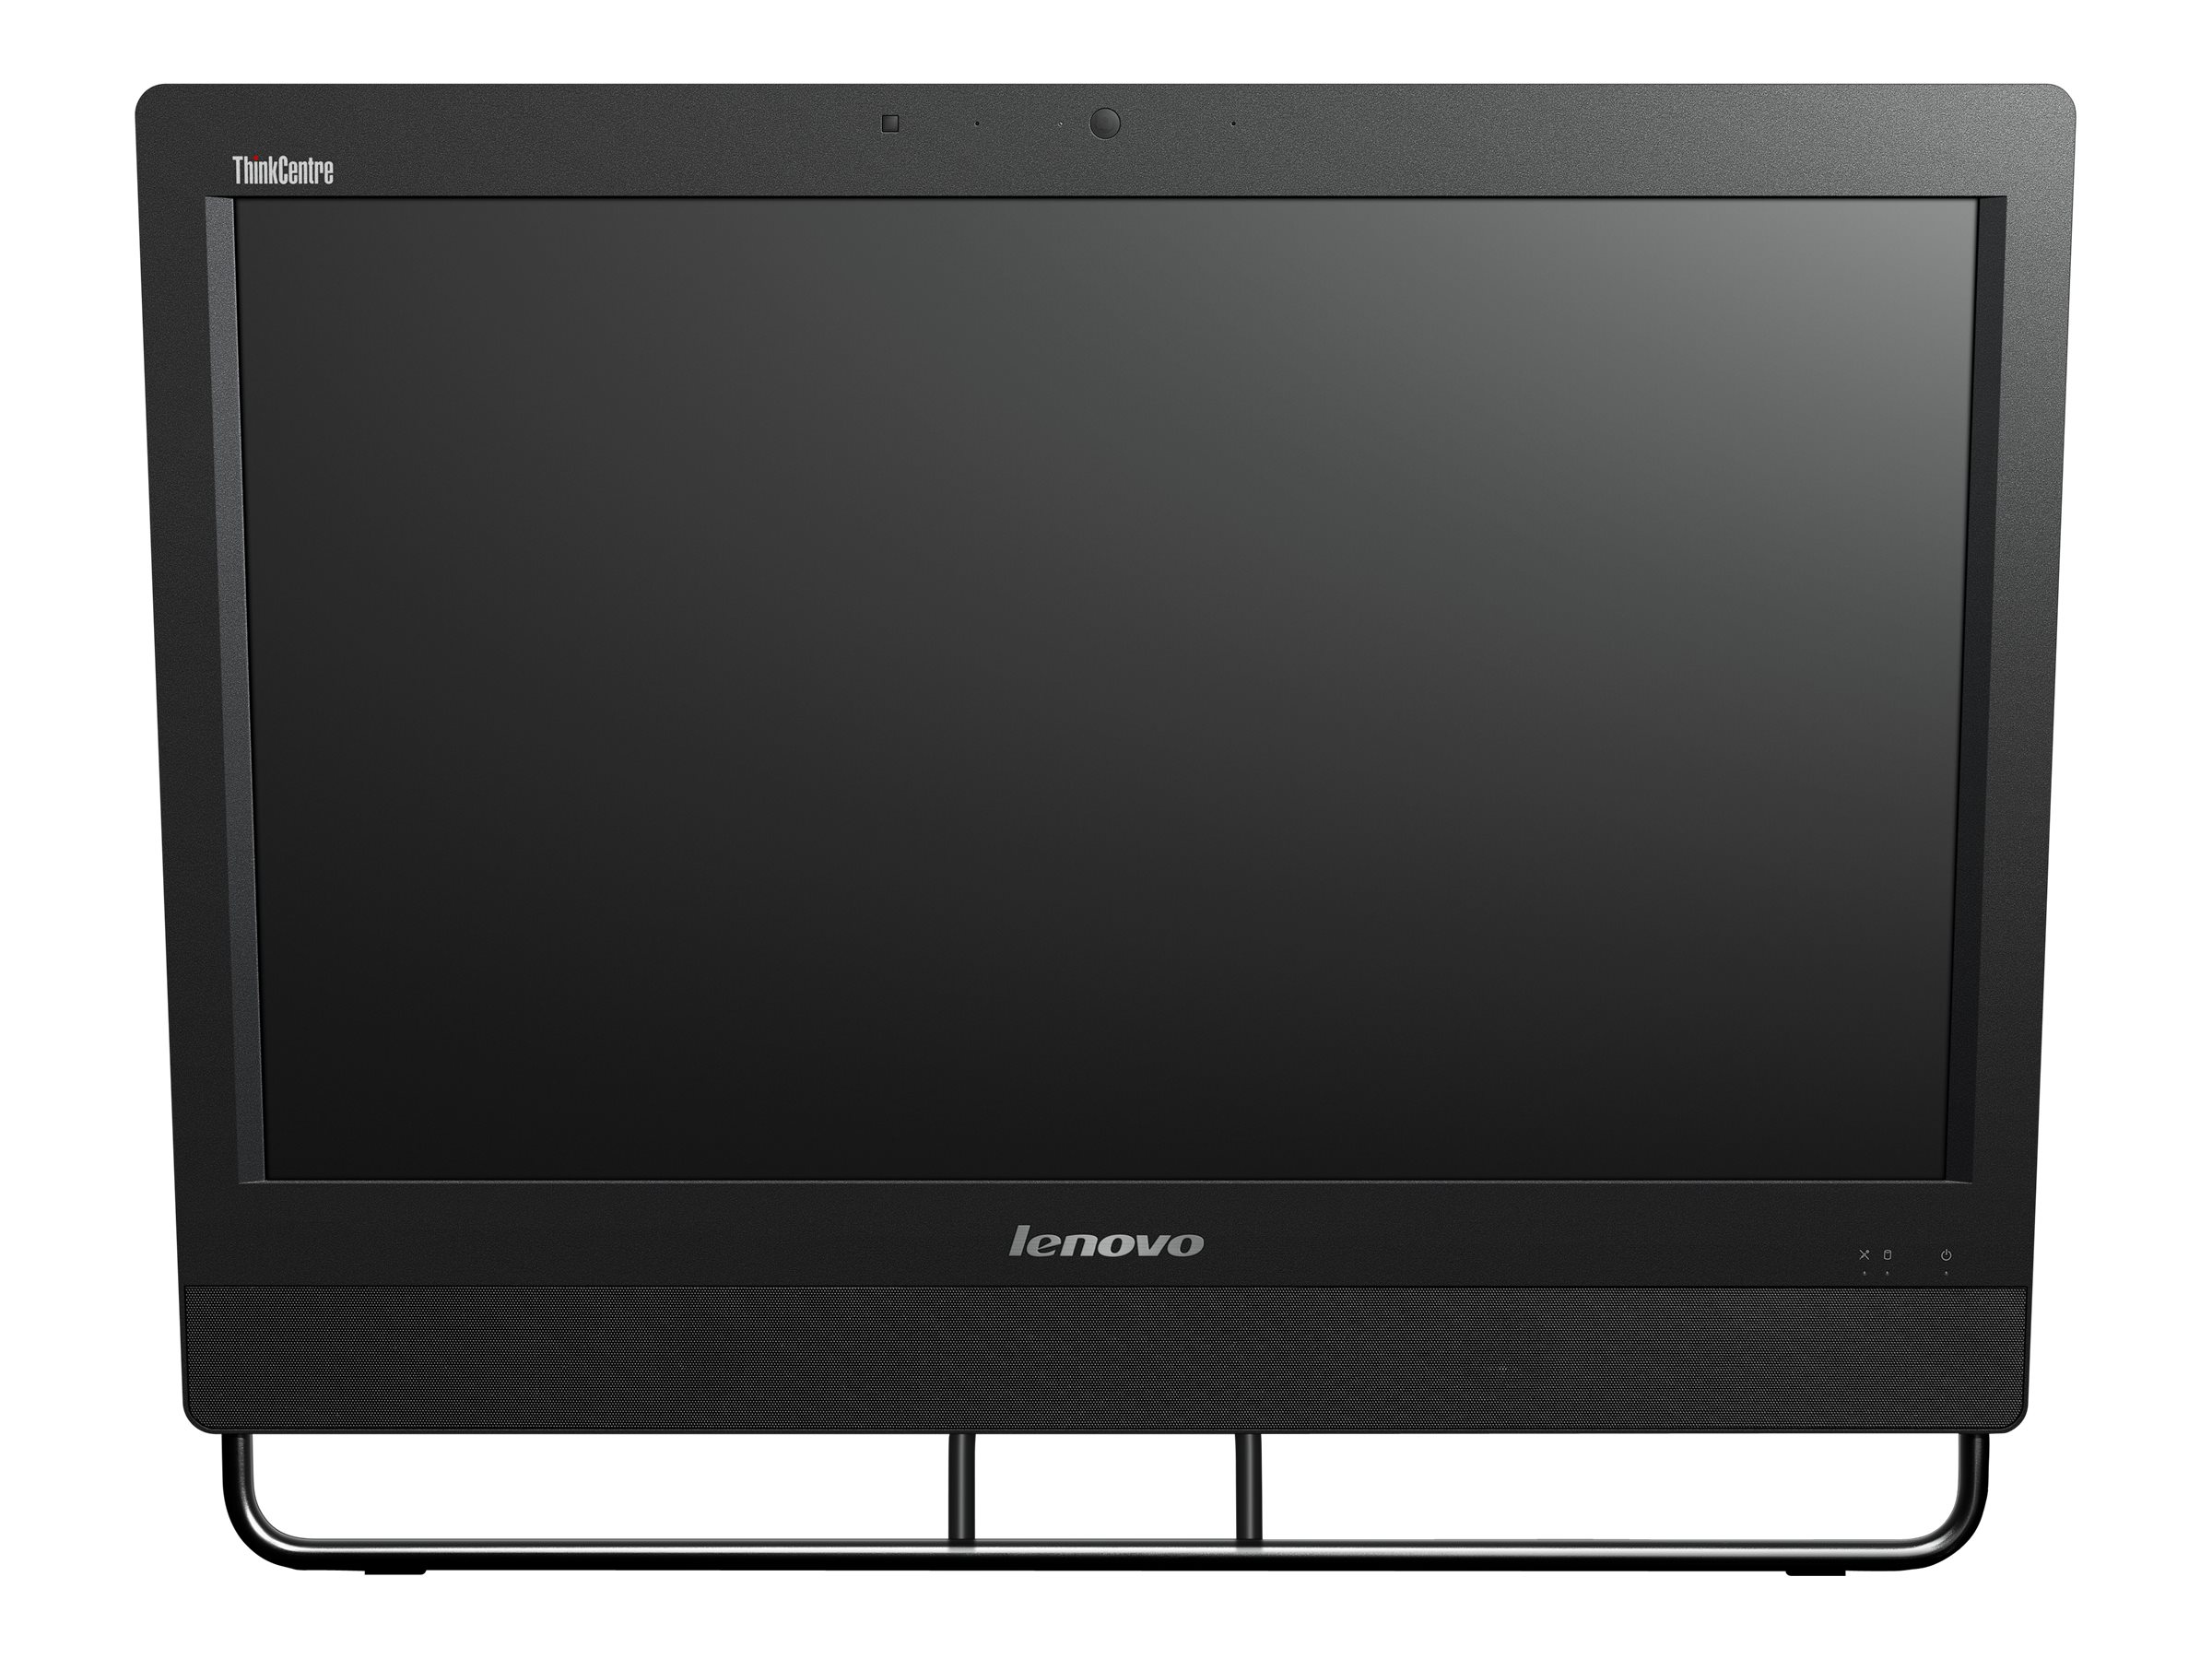 Lenovo ThinkCentre M93z Core i5-4590S 3.0GHz 4GB 180GB SSD DVD+RW bgn BT WC 23 FHD MT W7P64-W8.1P, 10AC003AUS